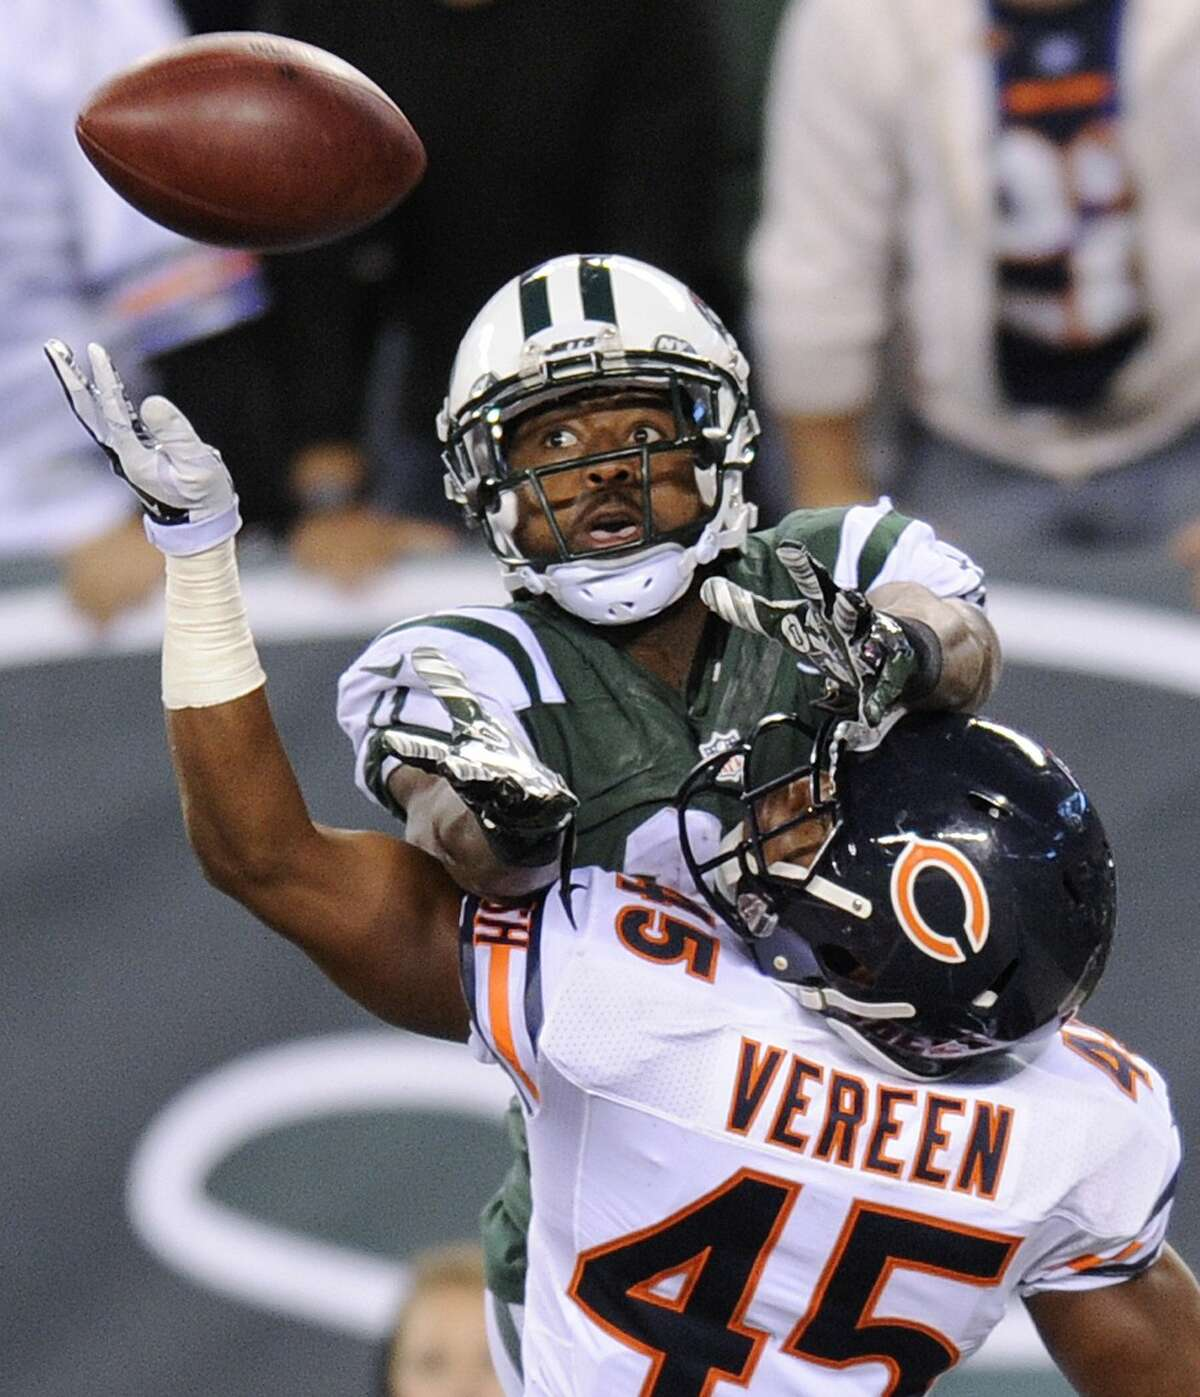 The New York Jets announced Tuesday they have signed receiver Jeremy Kerley to a four-year contract extension.